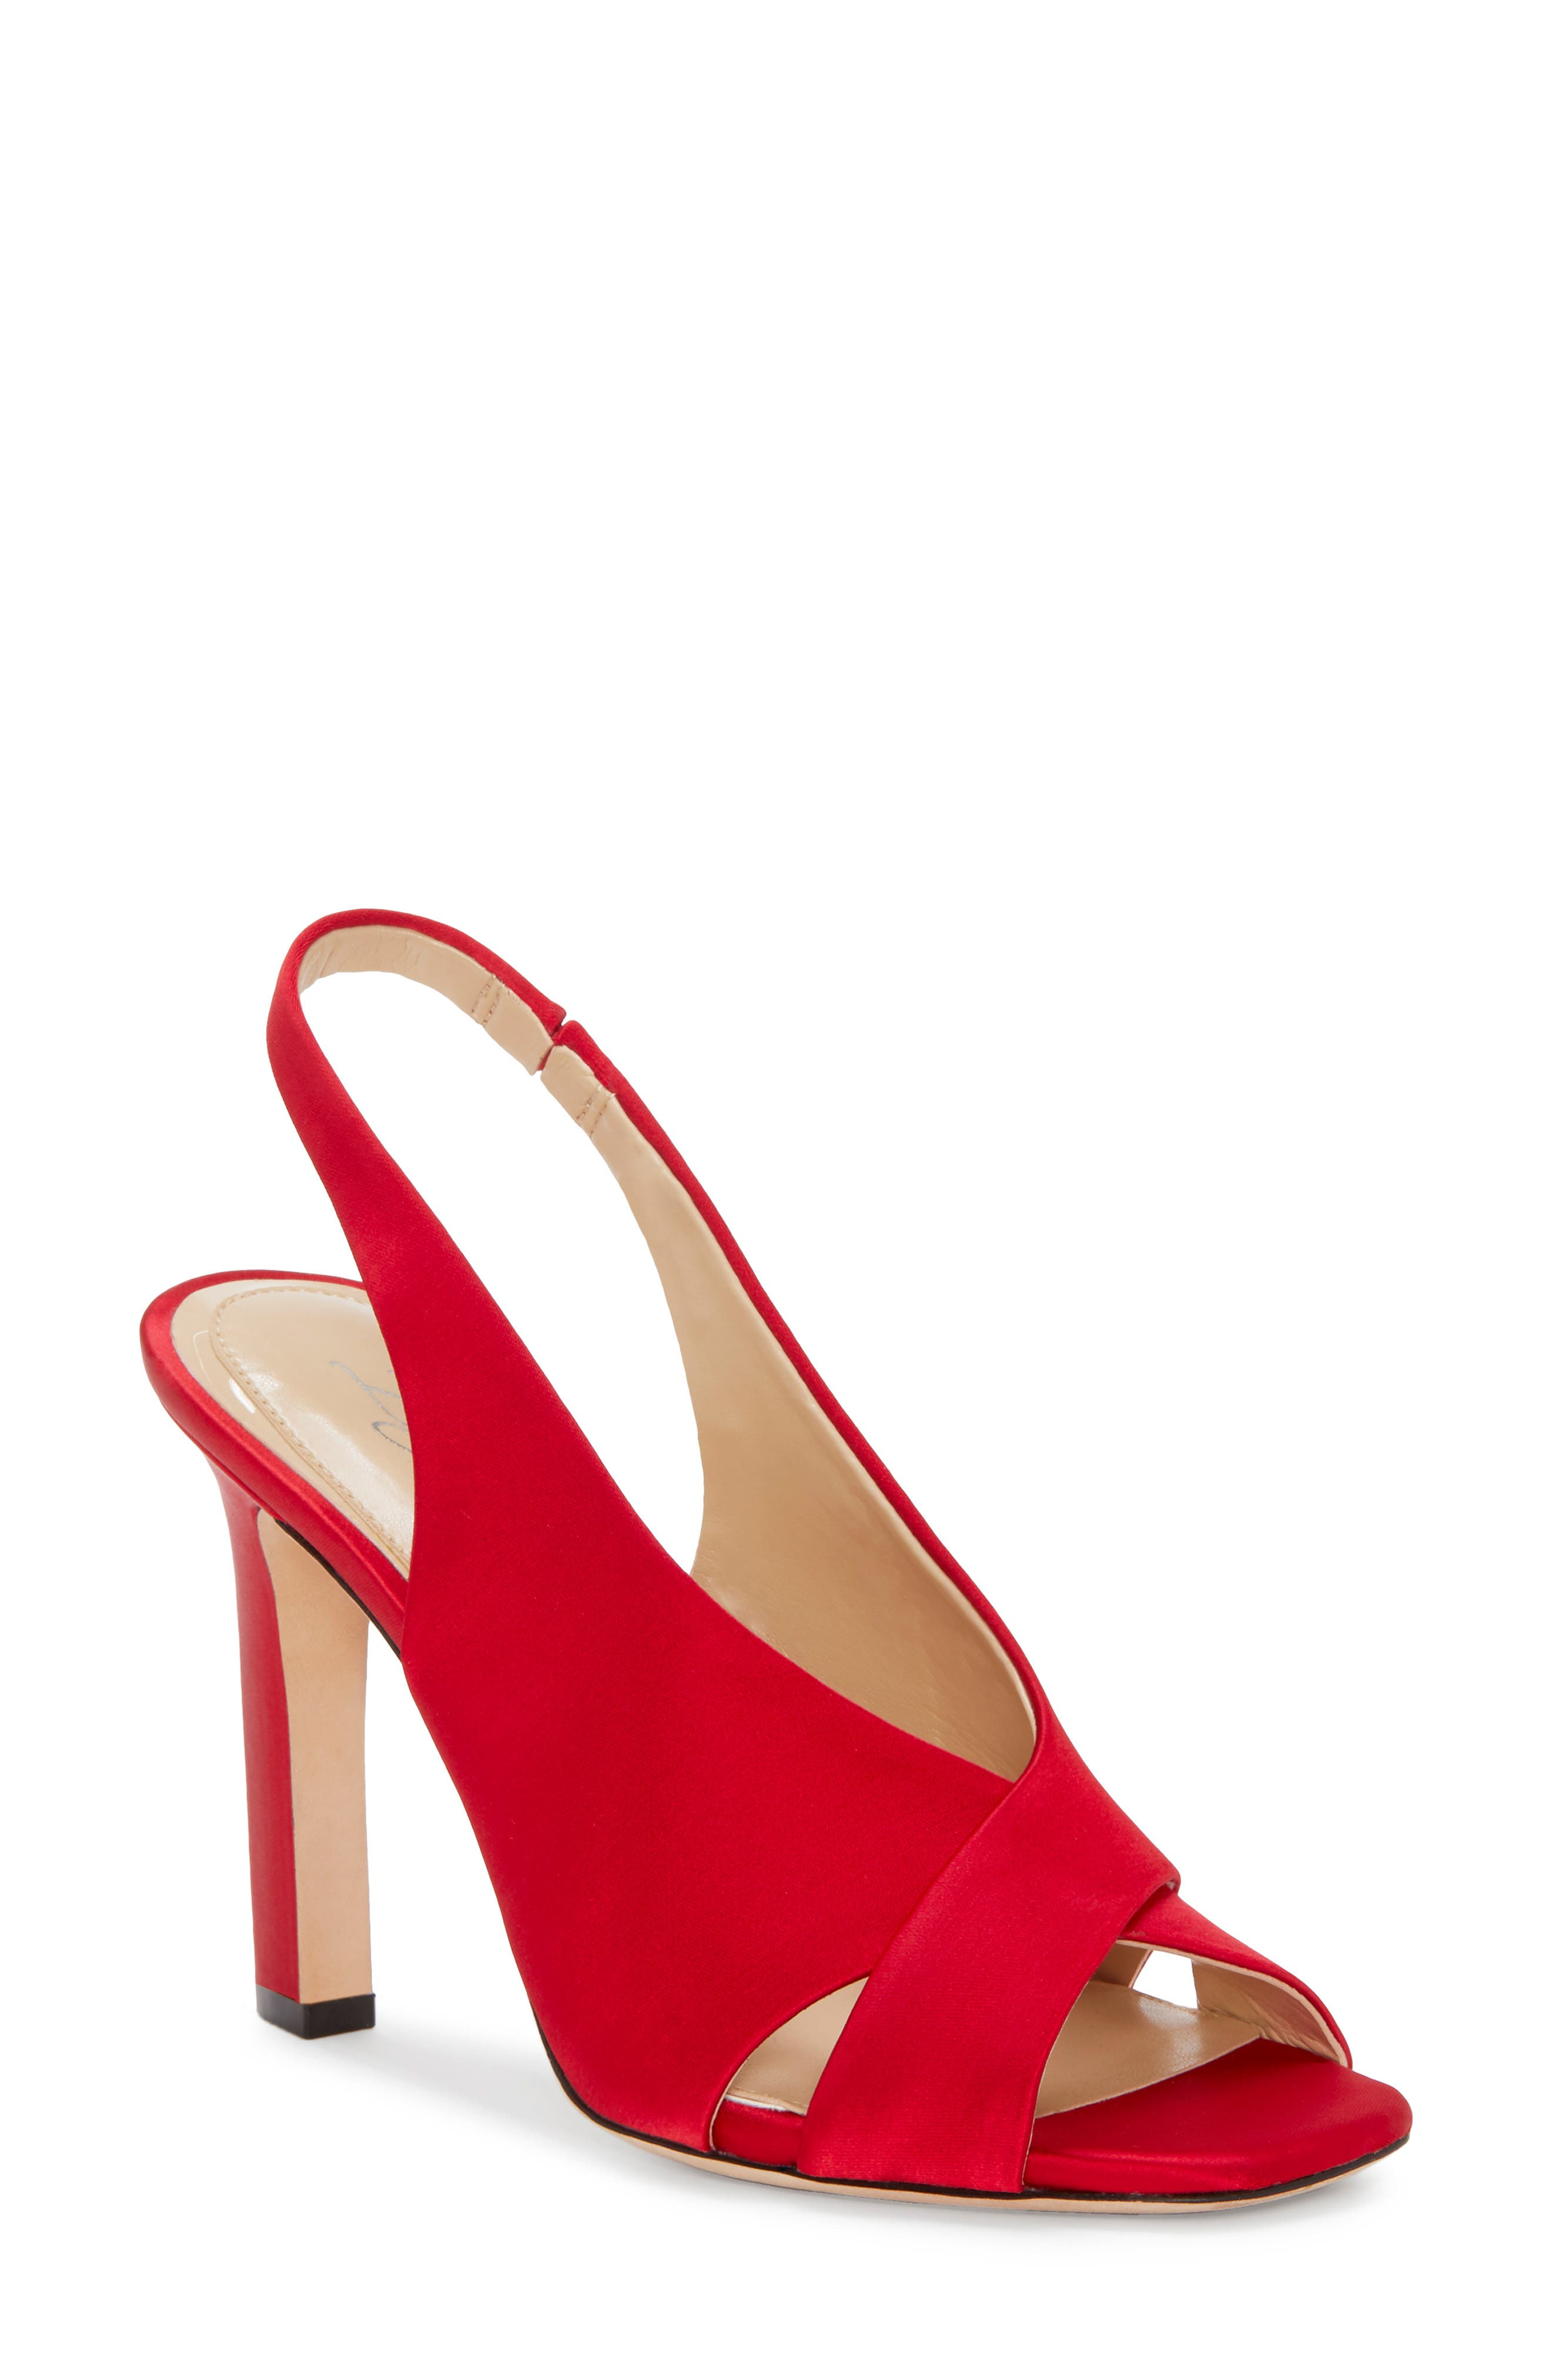 Imagine By Vince Camuto Wrennie Slingback Sandal, Red